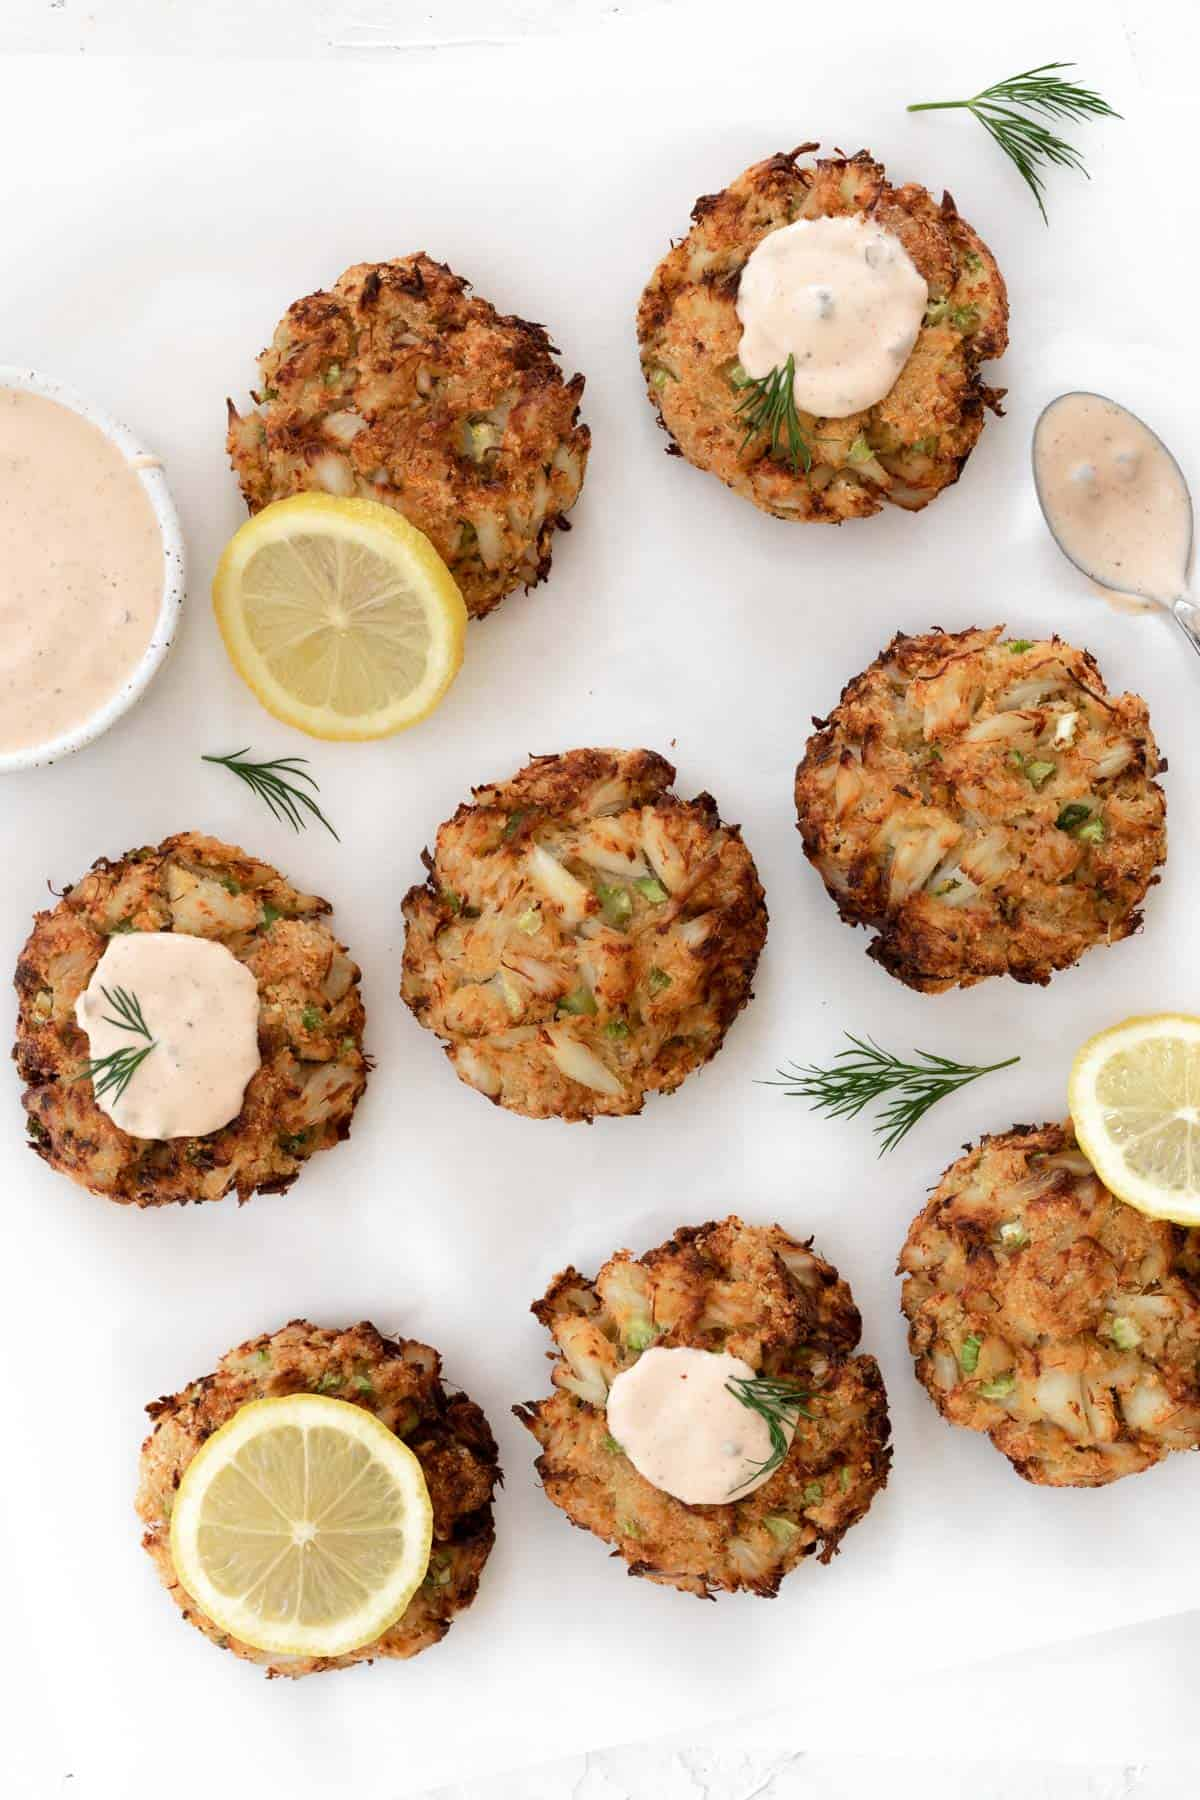 Air fryer crab cakes on a white backdrop with a bowl of remoulade sauce, lemon slices, and dill sprigs around them.